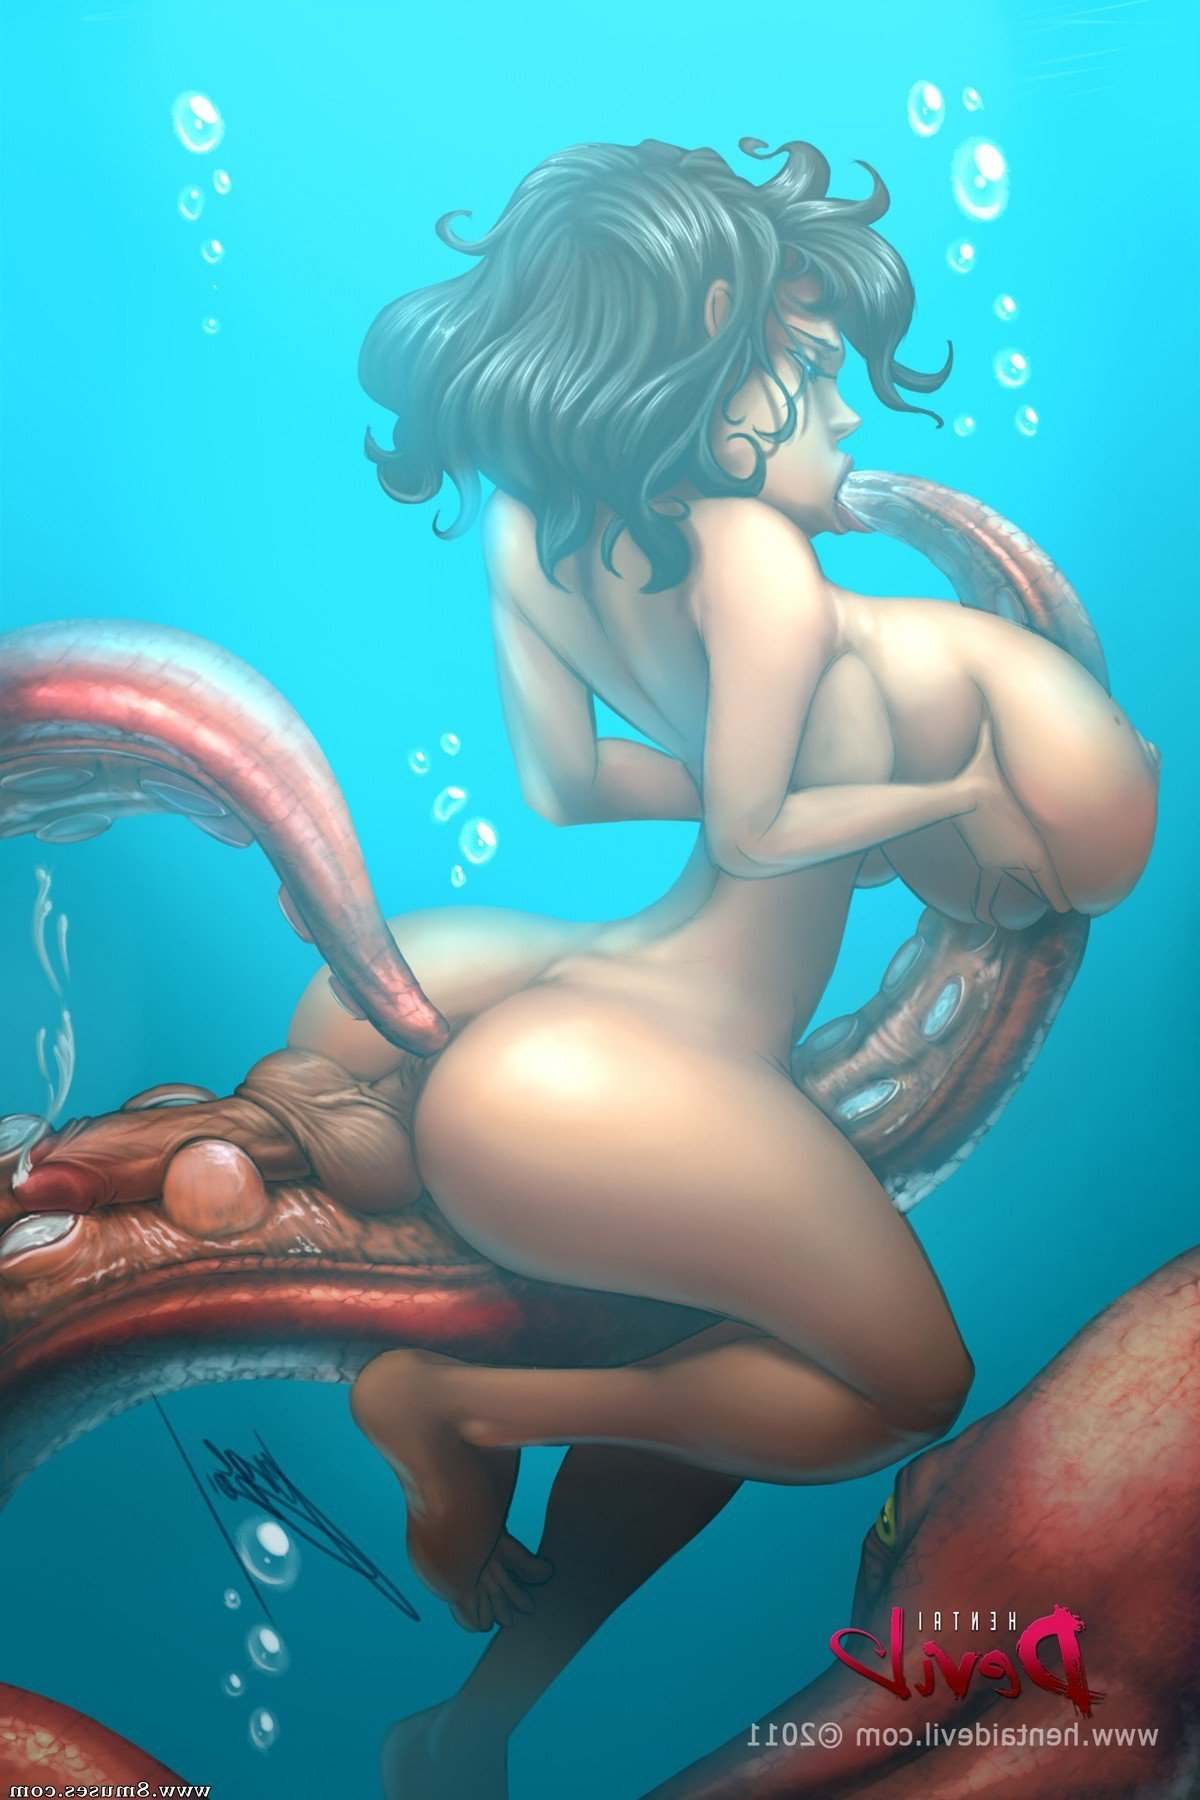 Taboolicious_xxx-Comics/Art/year-2011 year_2011__8muses_-_Sex_and_Porn_Comics_16.jpg